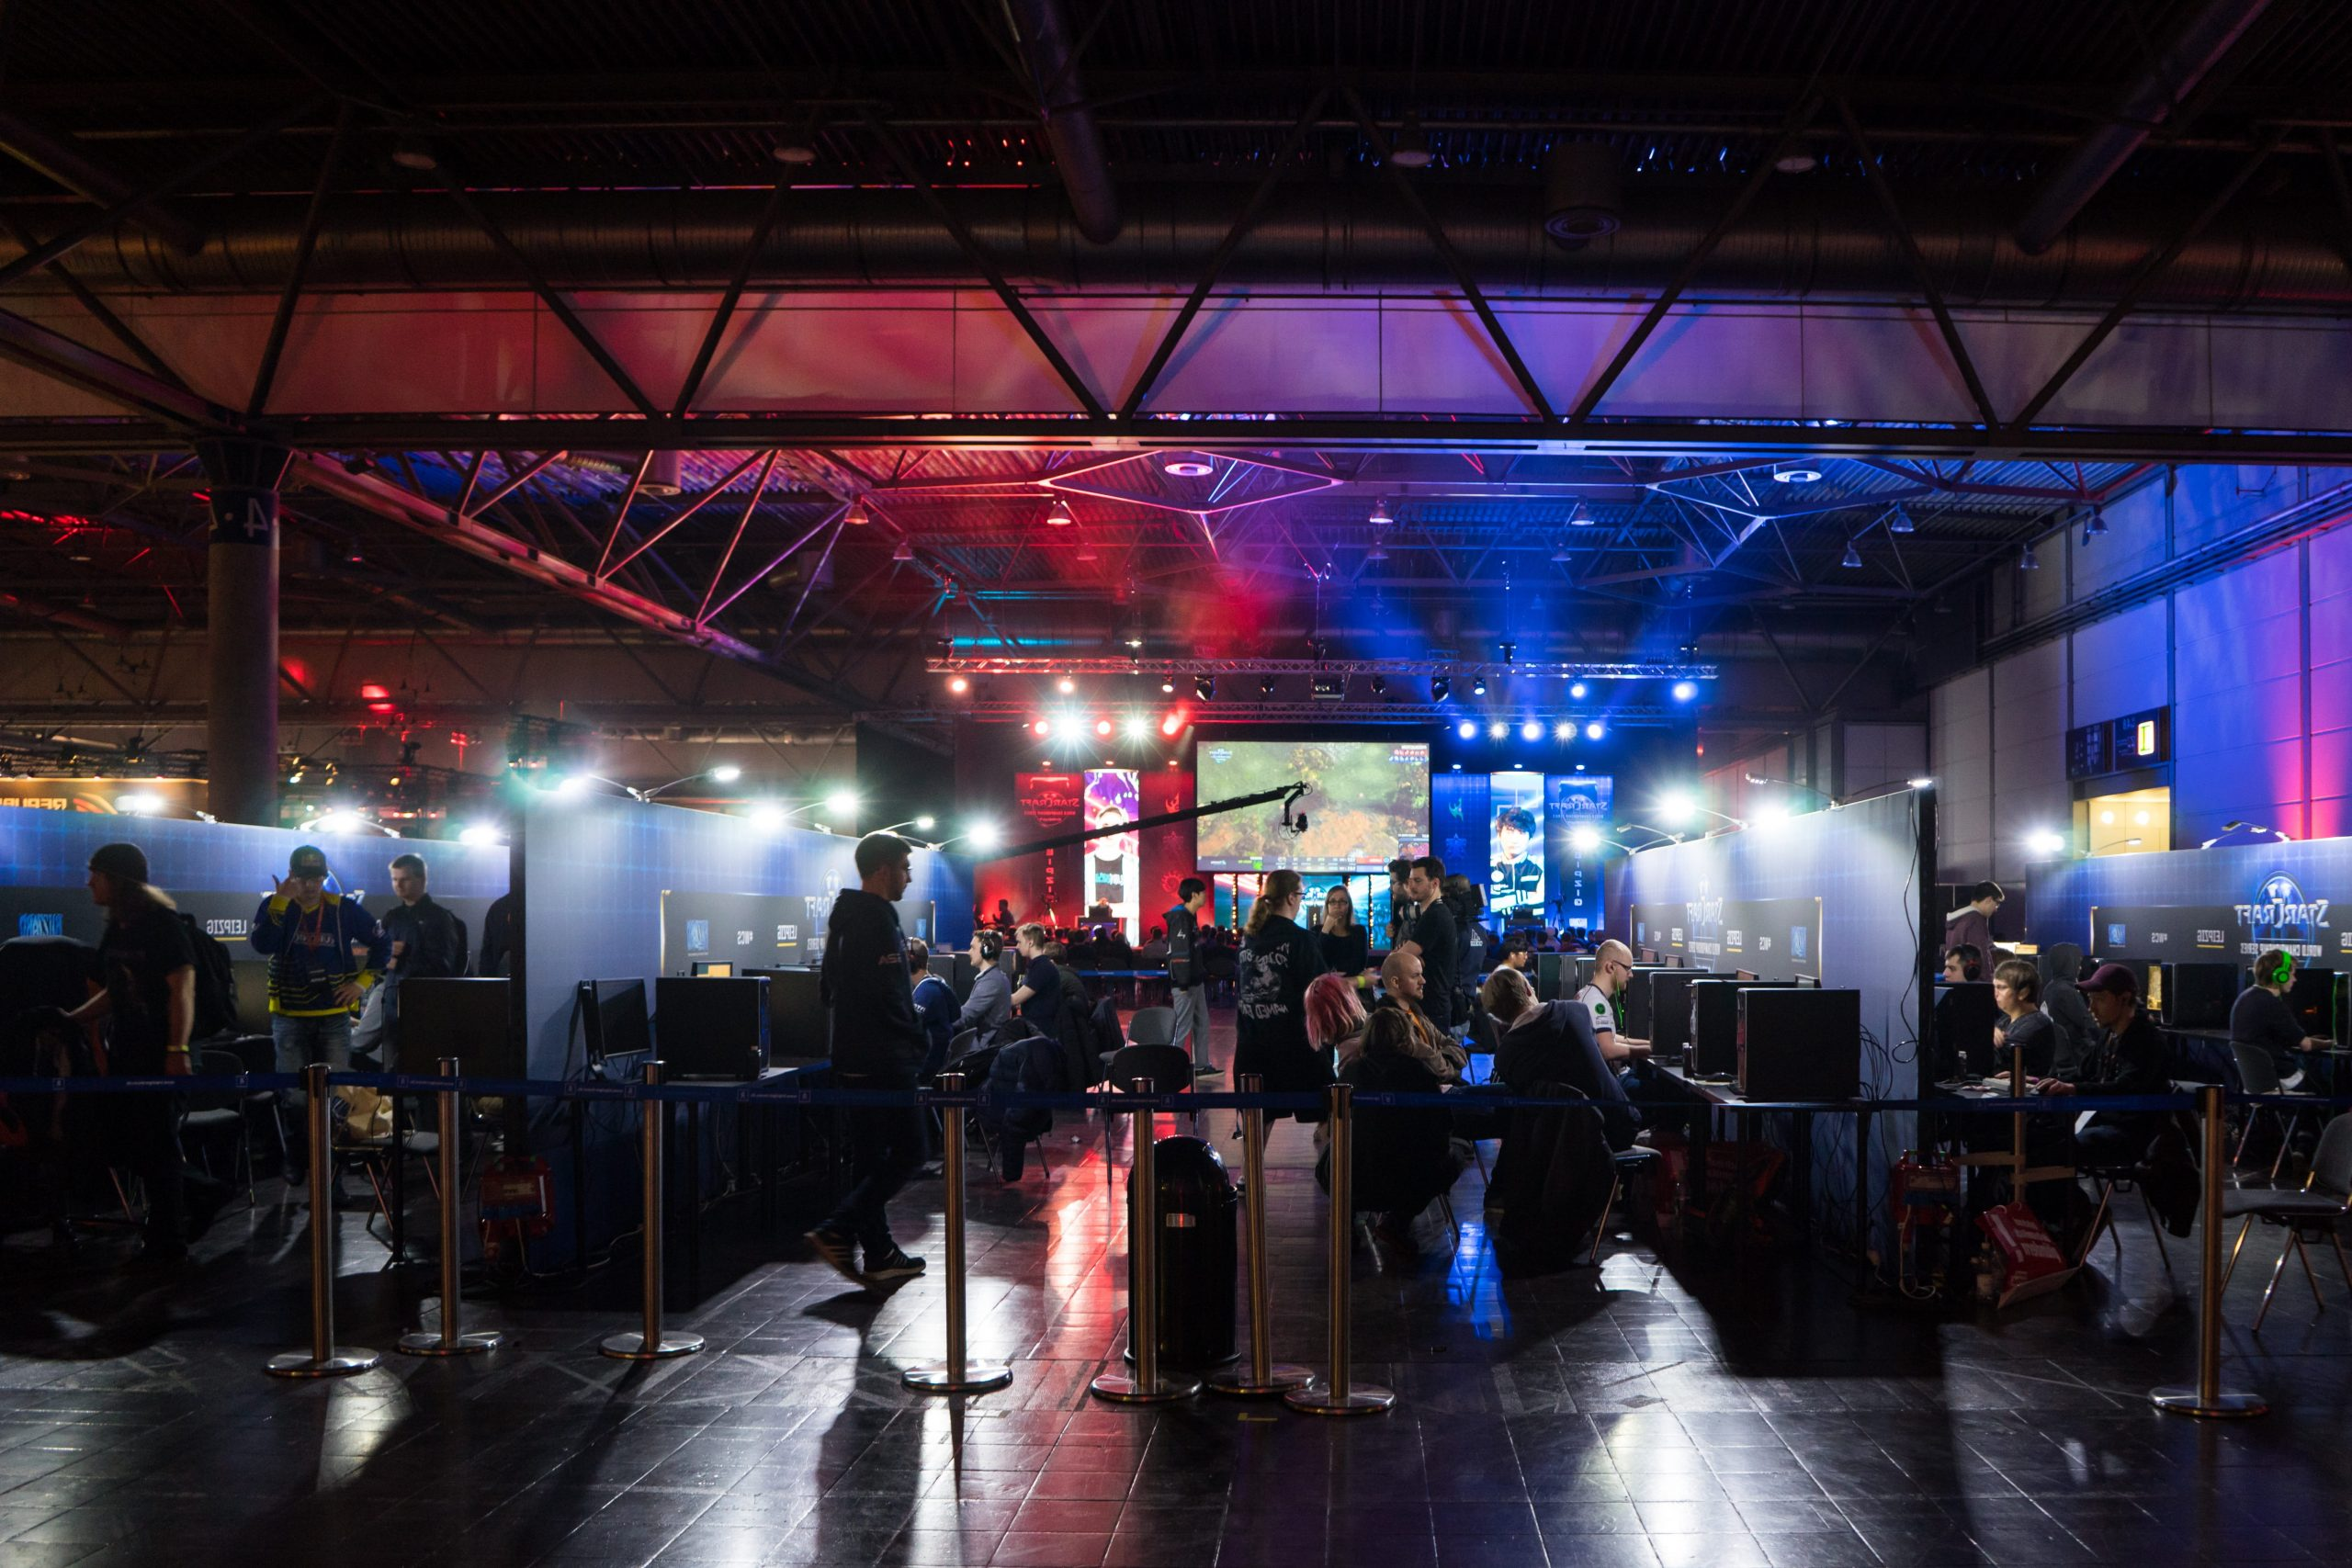 What Can We Expect From The Future of eSports?